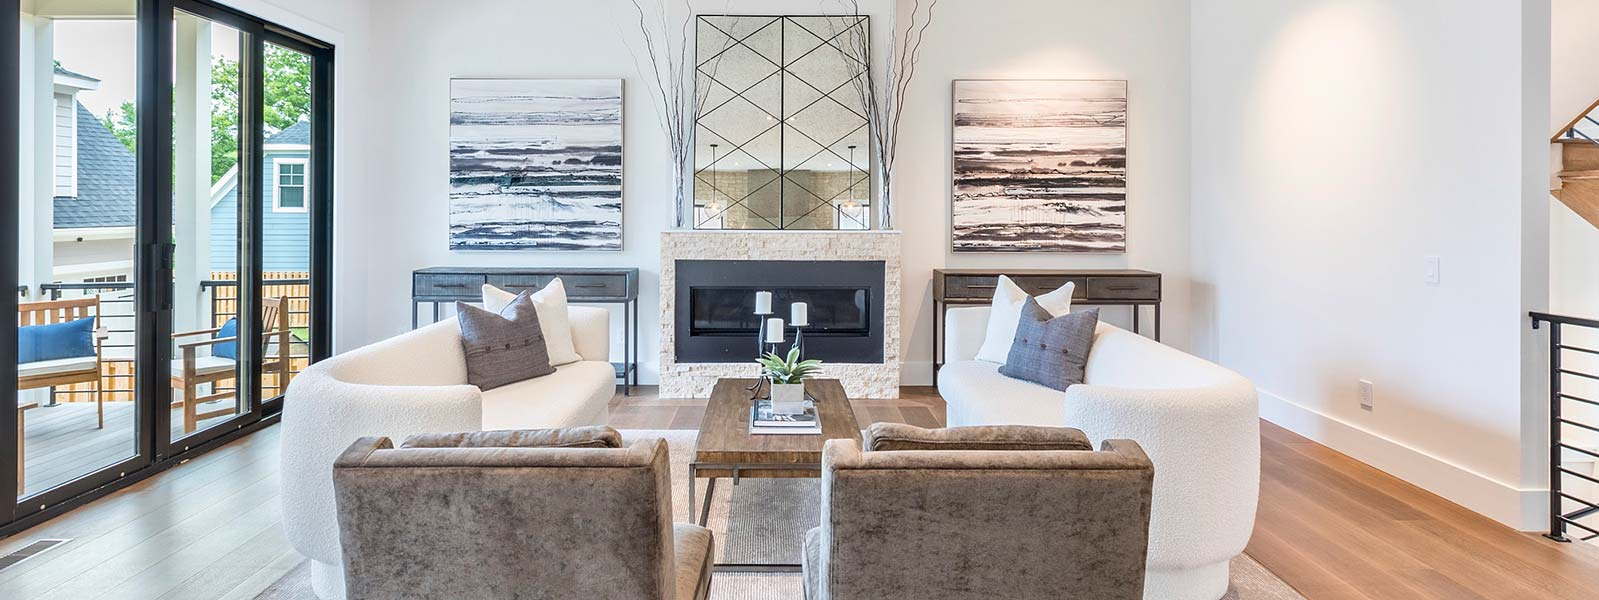 Leslie Anderson Interiors - Home Staging and Interior Design